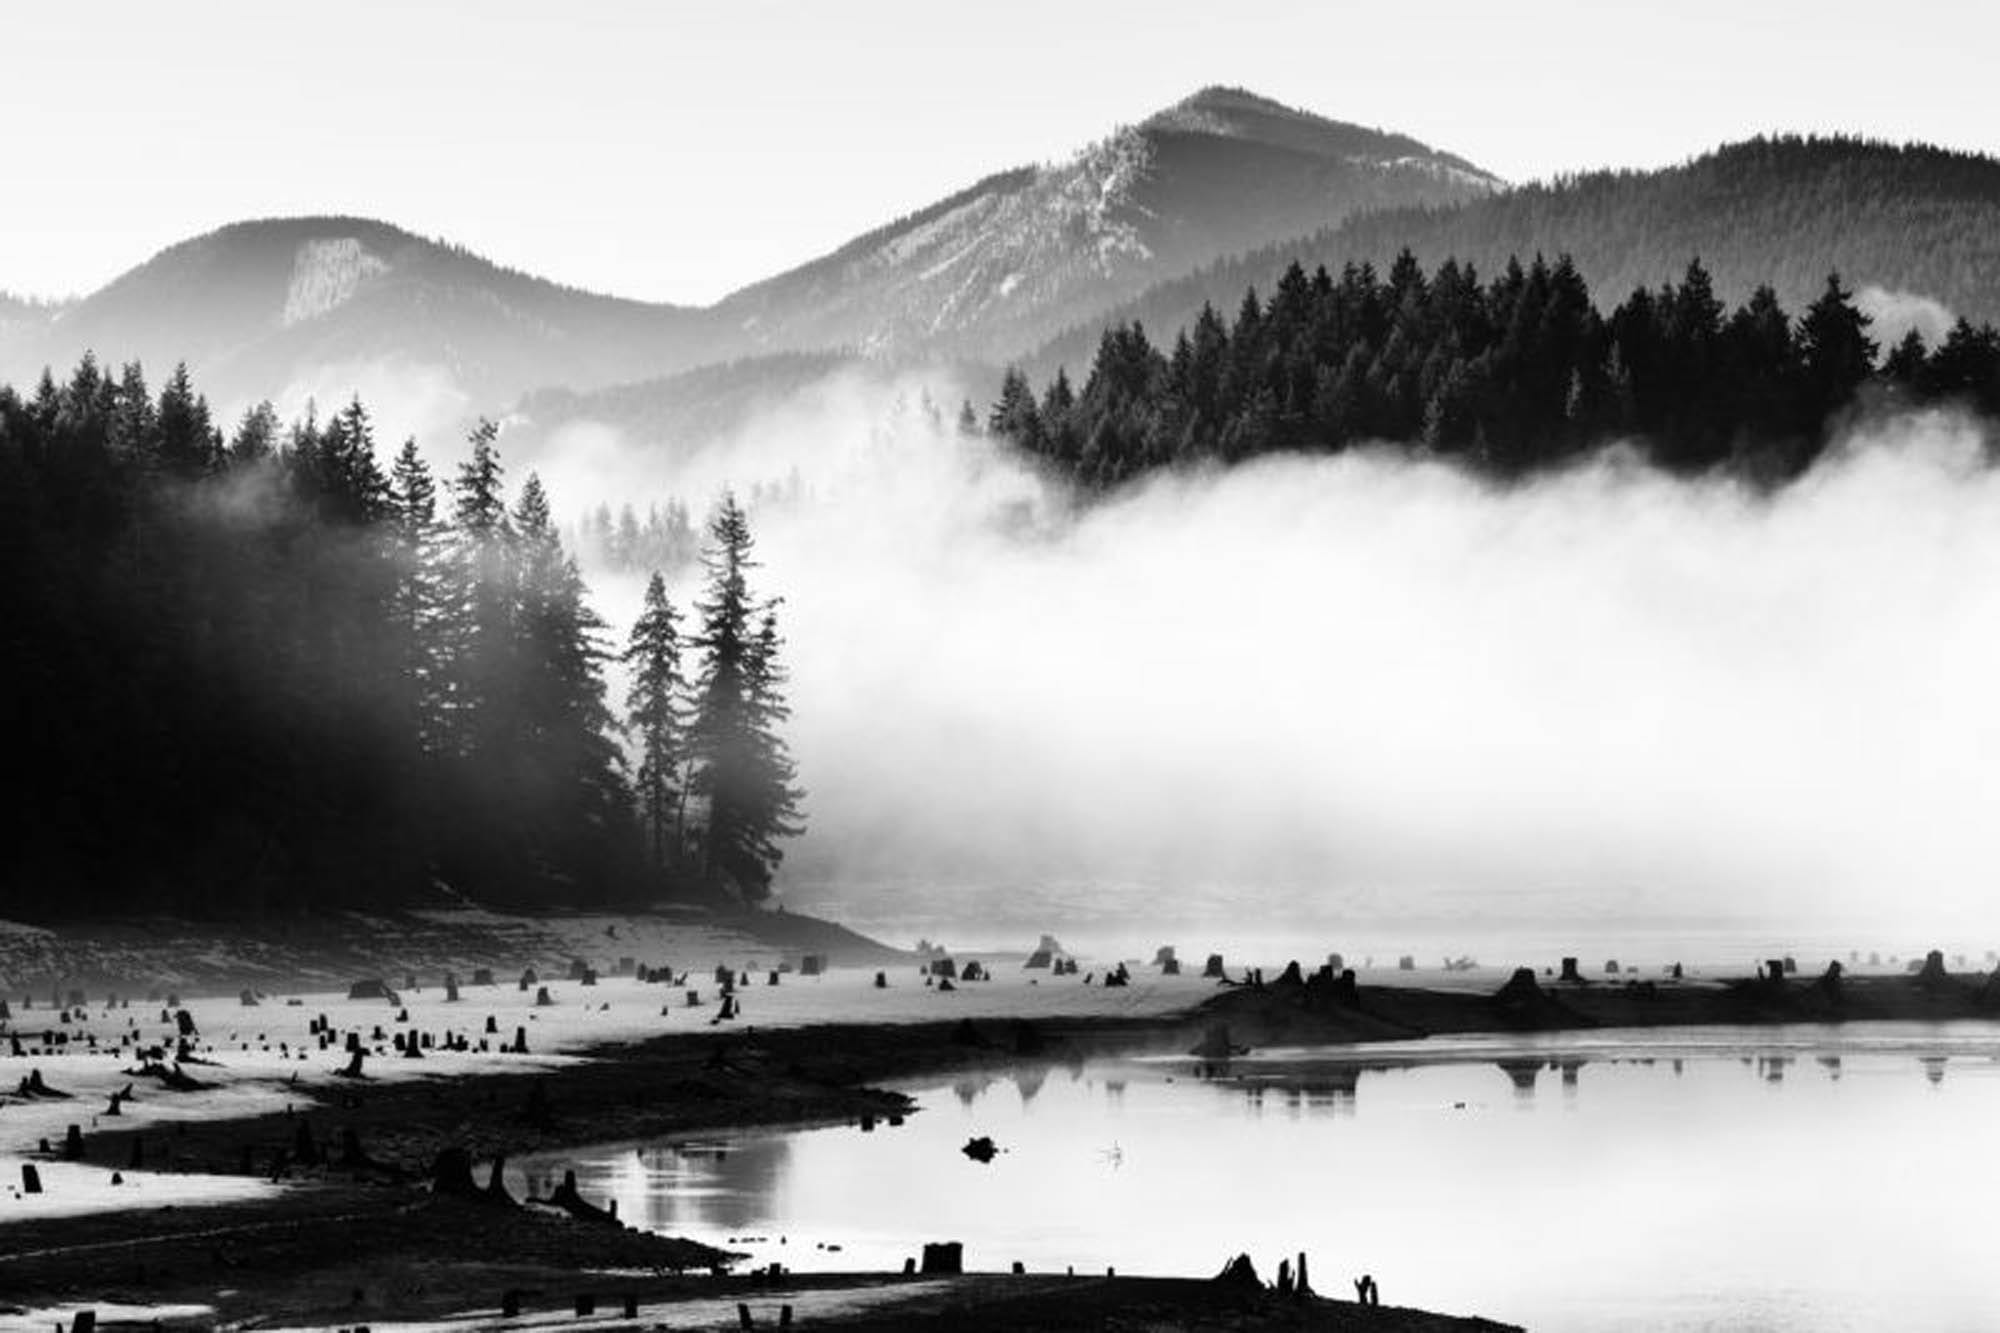 Nature photo in black-and-white tones.